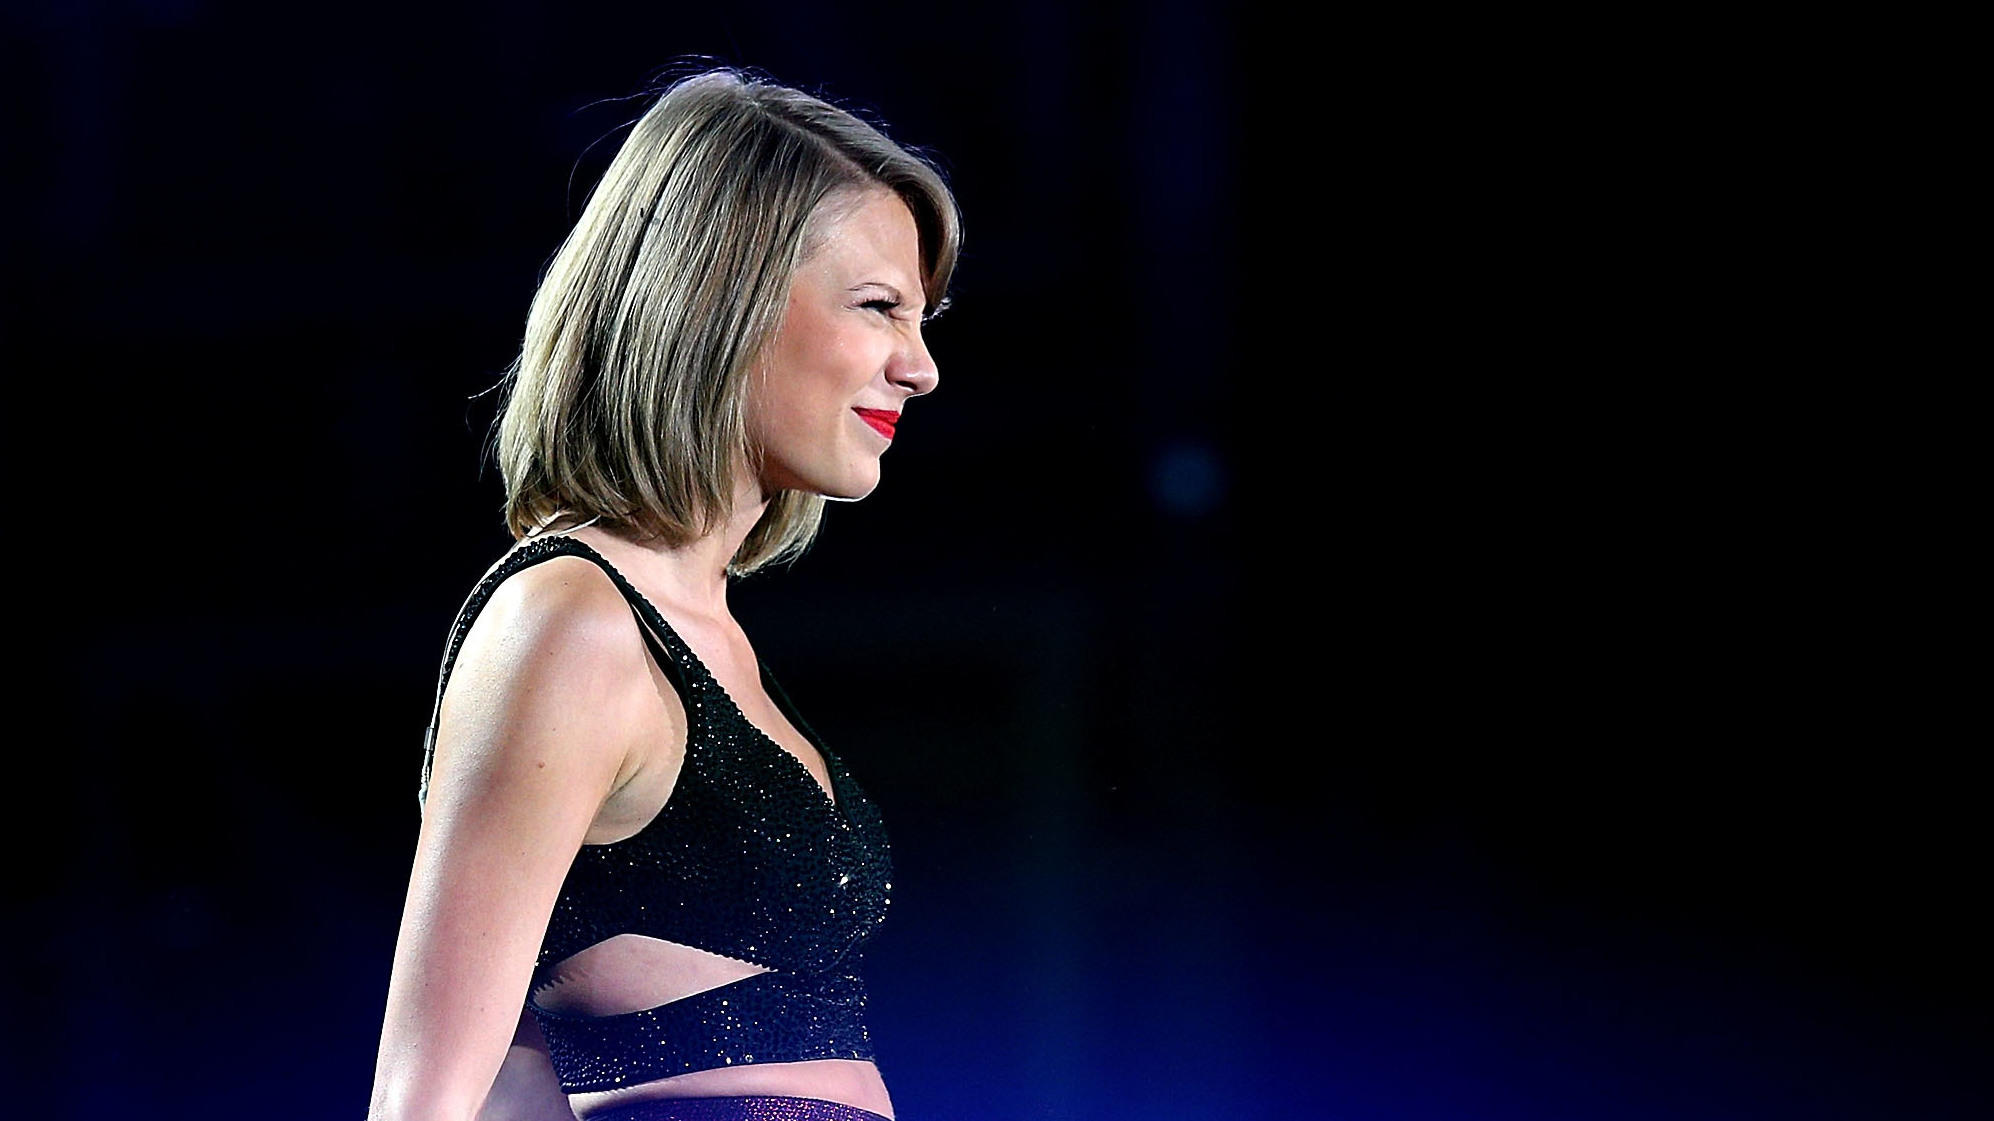 Taylor Swift criticised for 'immature' music release alongside Katy Perry album